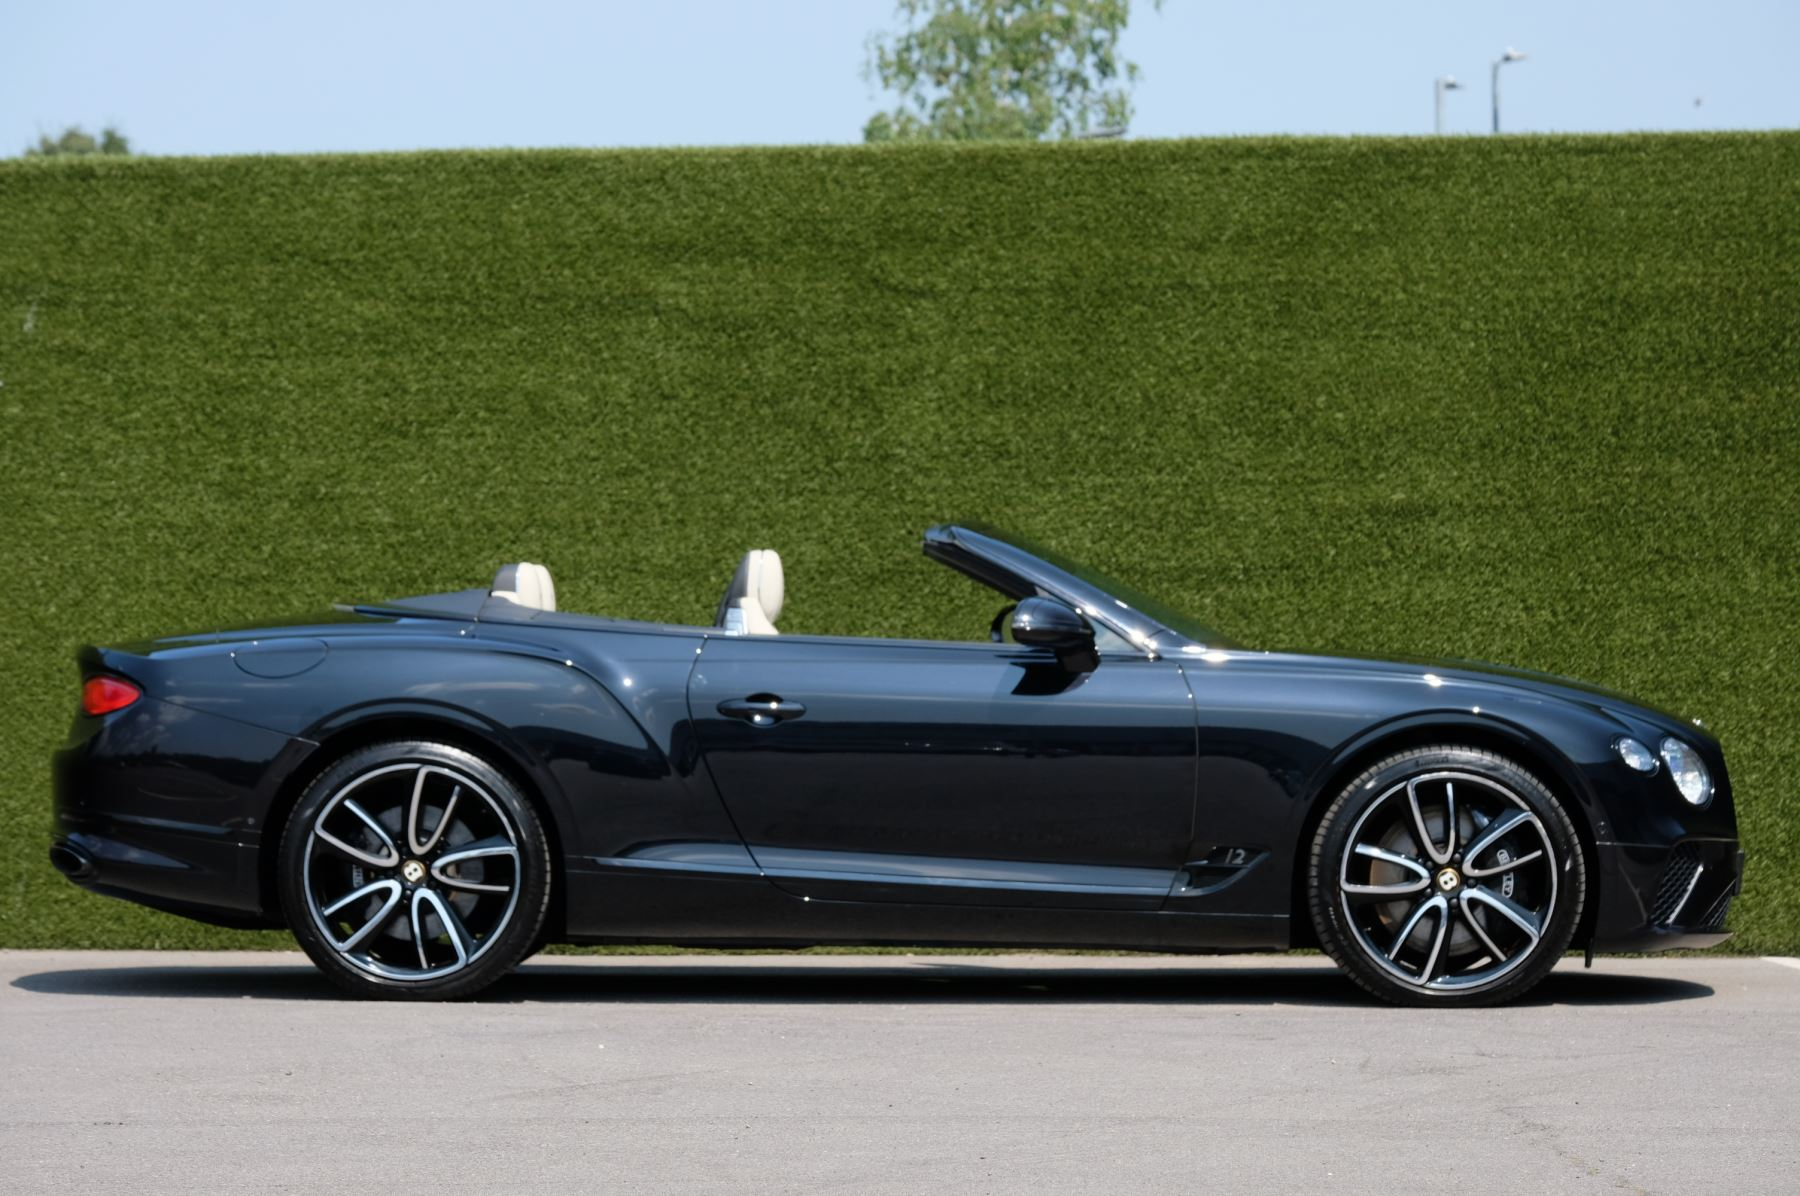 Bentley Continental GTC 6.0 W12 - Mulliner Driving Specification and Centenary Specification image 3